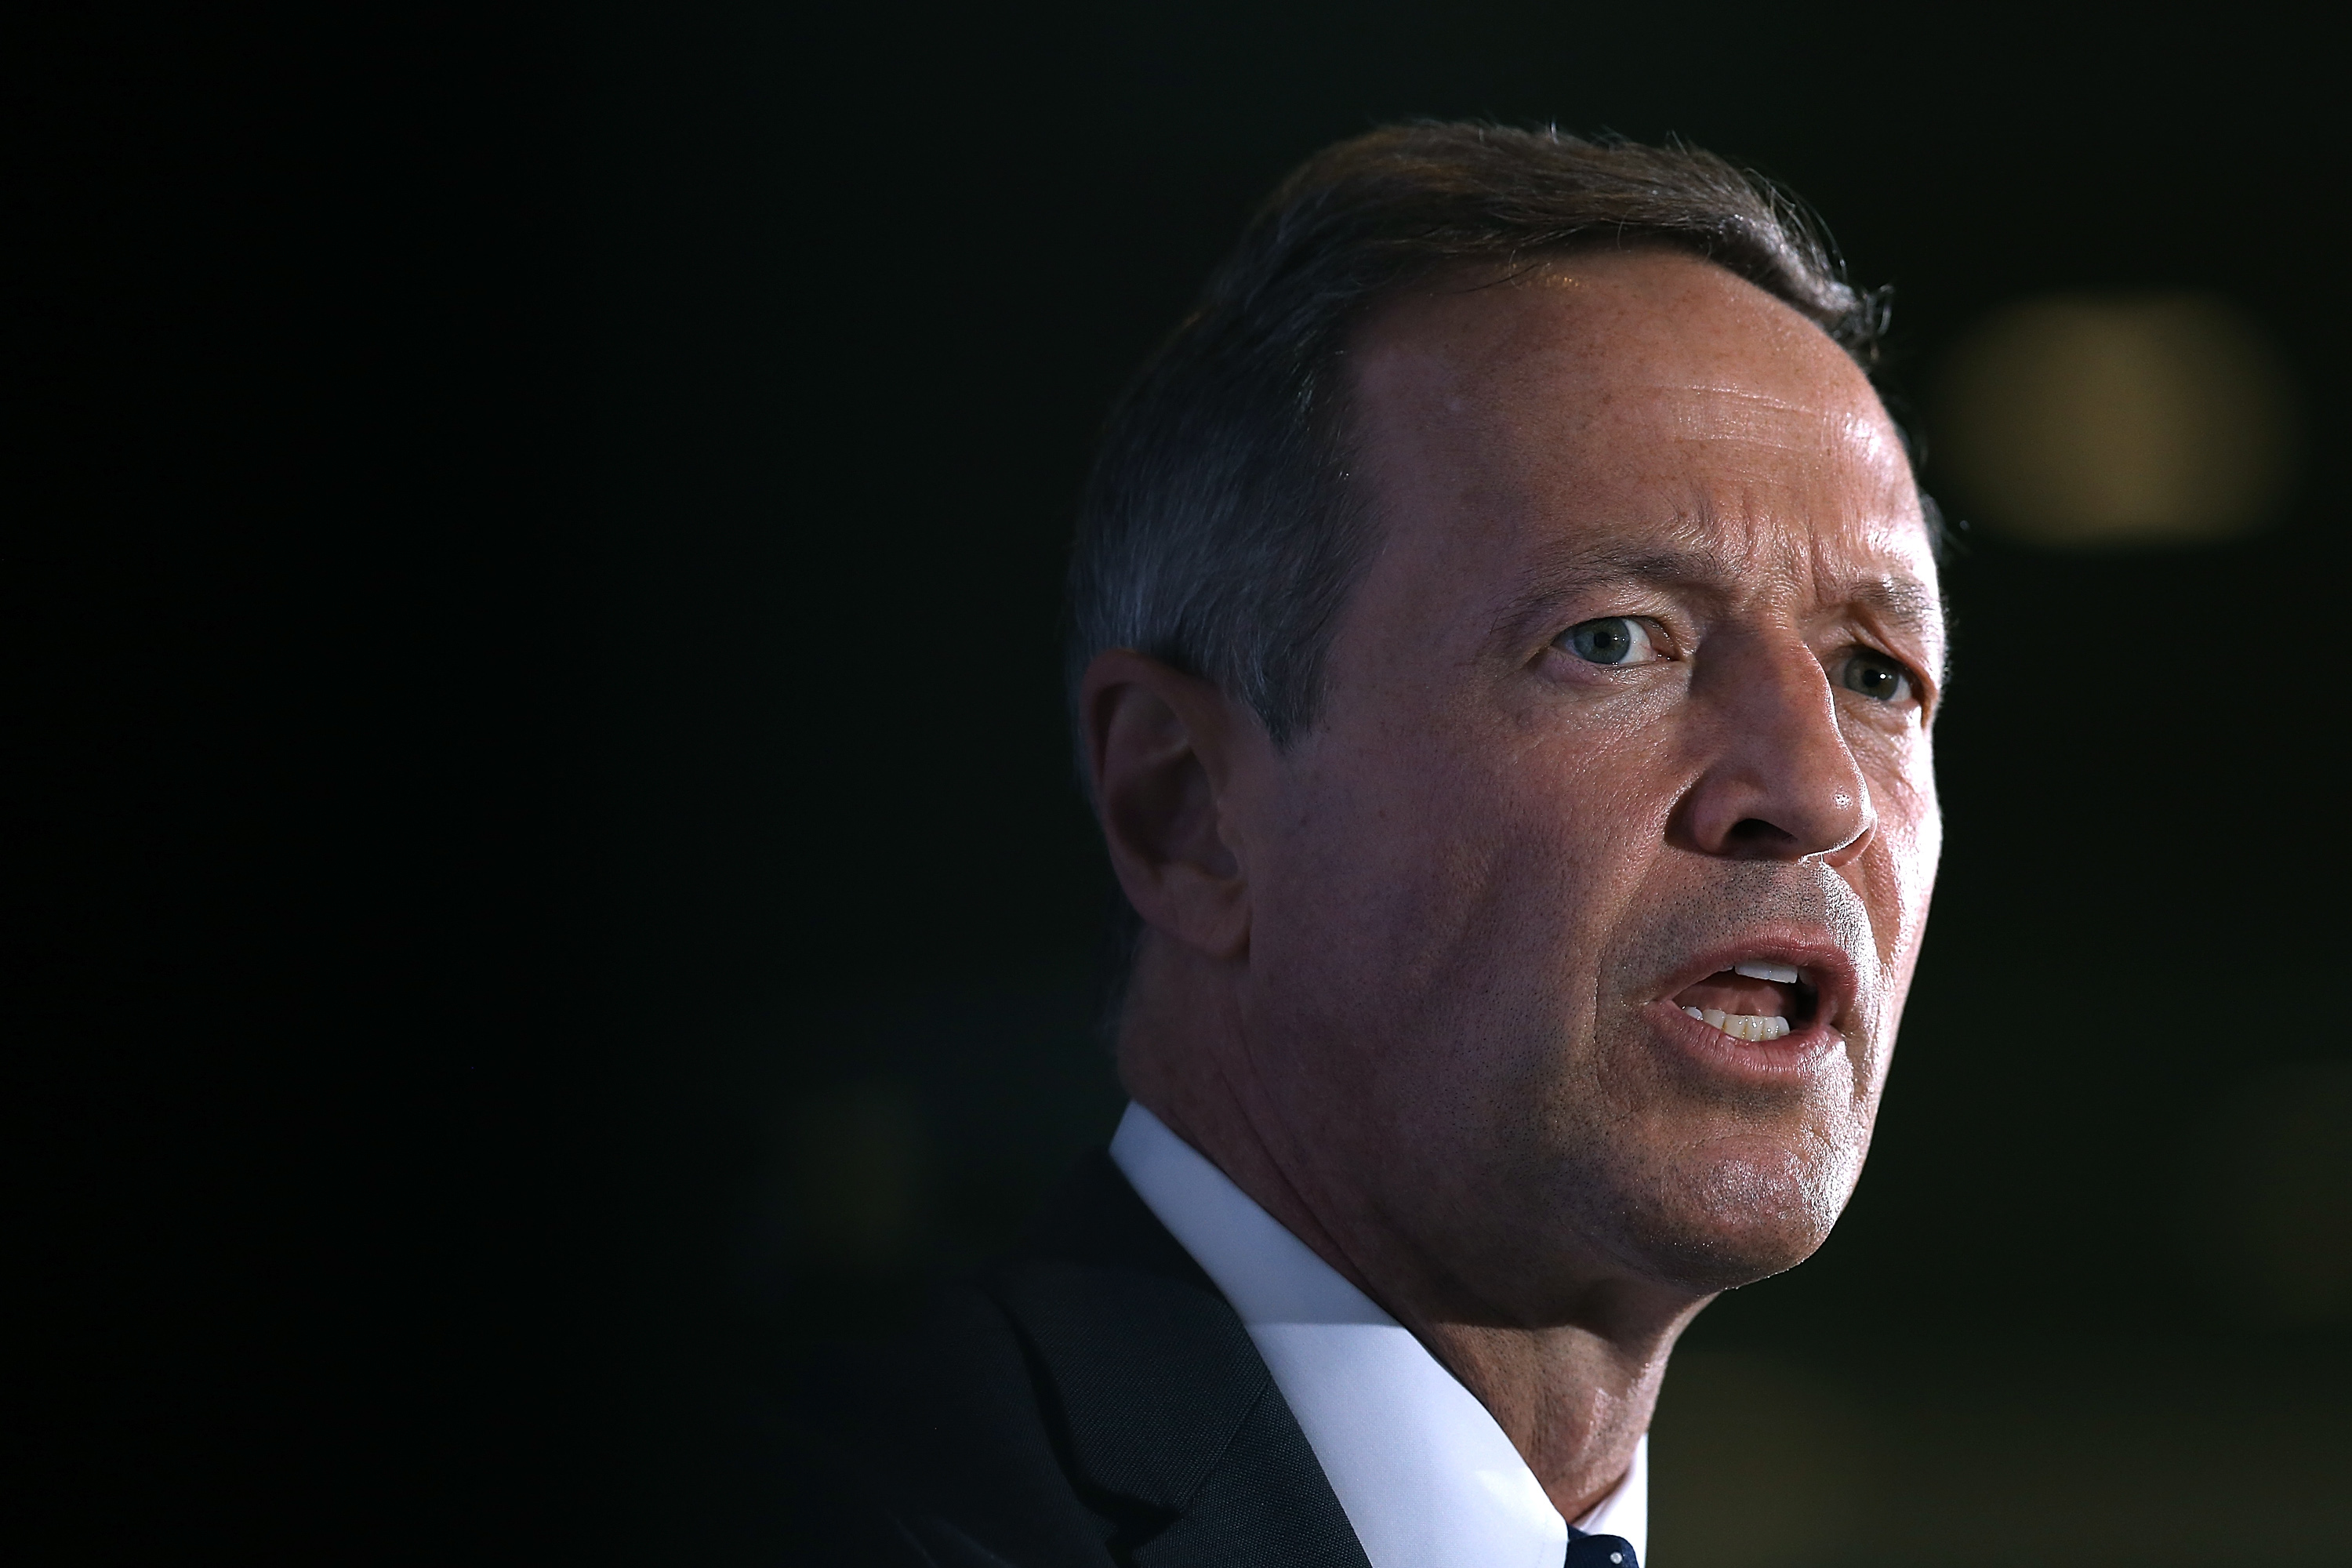 U.S. Democratic presidential candidate and former Maryland Gov. Martin O'Malley speaks at the U.S. Hispanic Chamber of Commerce June 3, 2015 in Washington, DC.